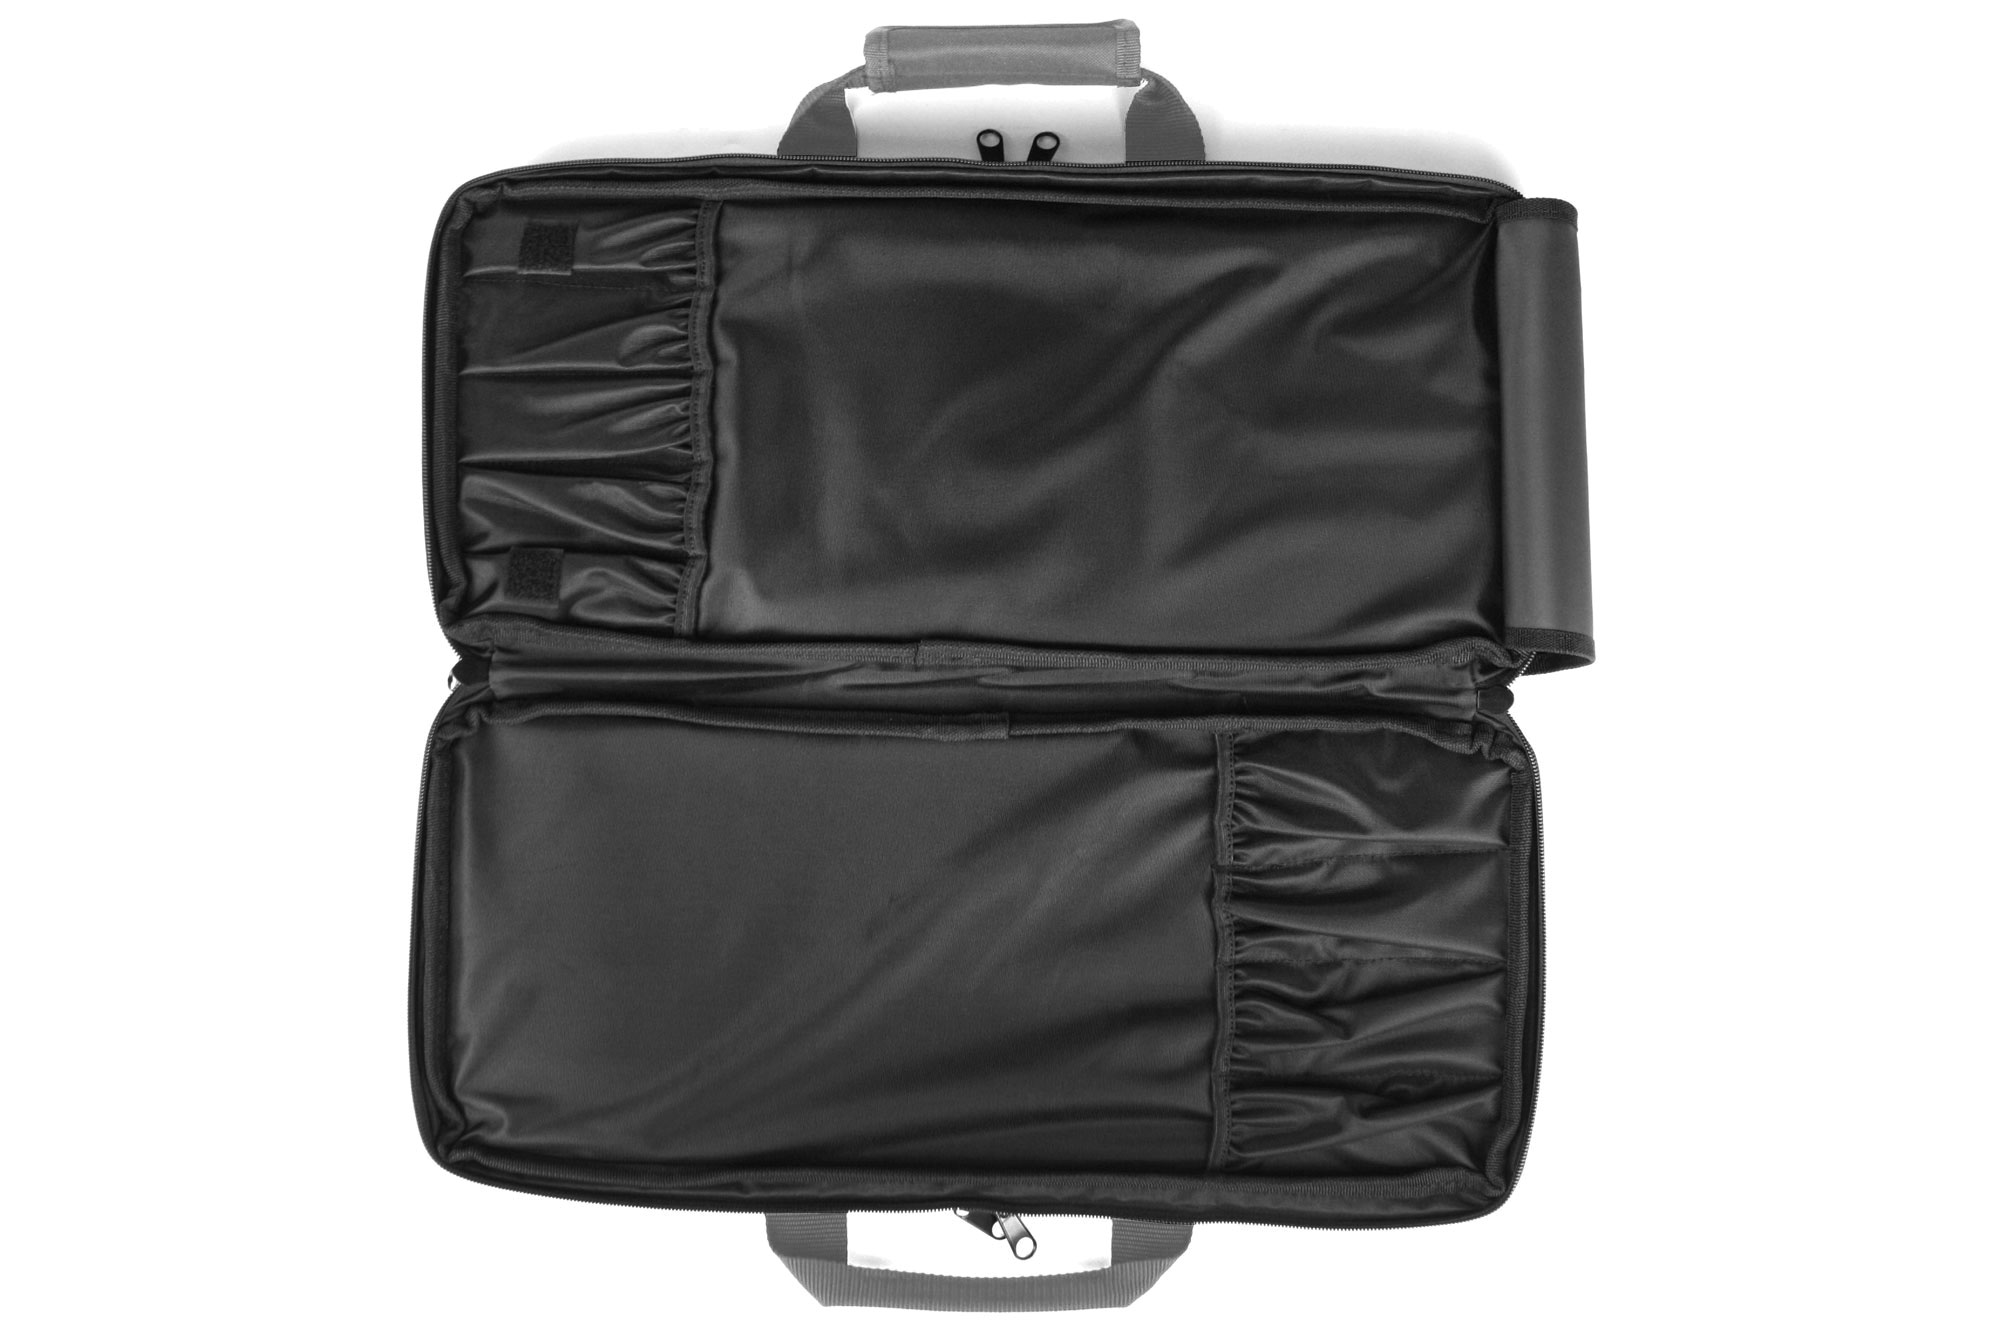 Chef S Knife Bag Carrying Case Enso Cutlery Bags